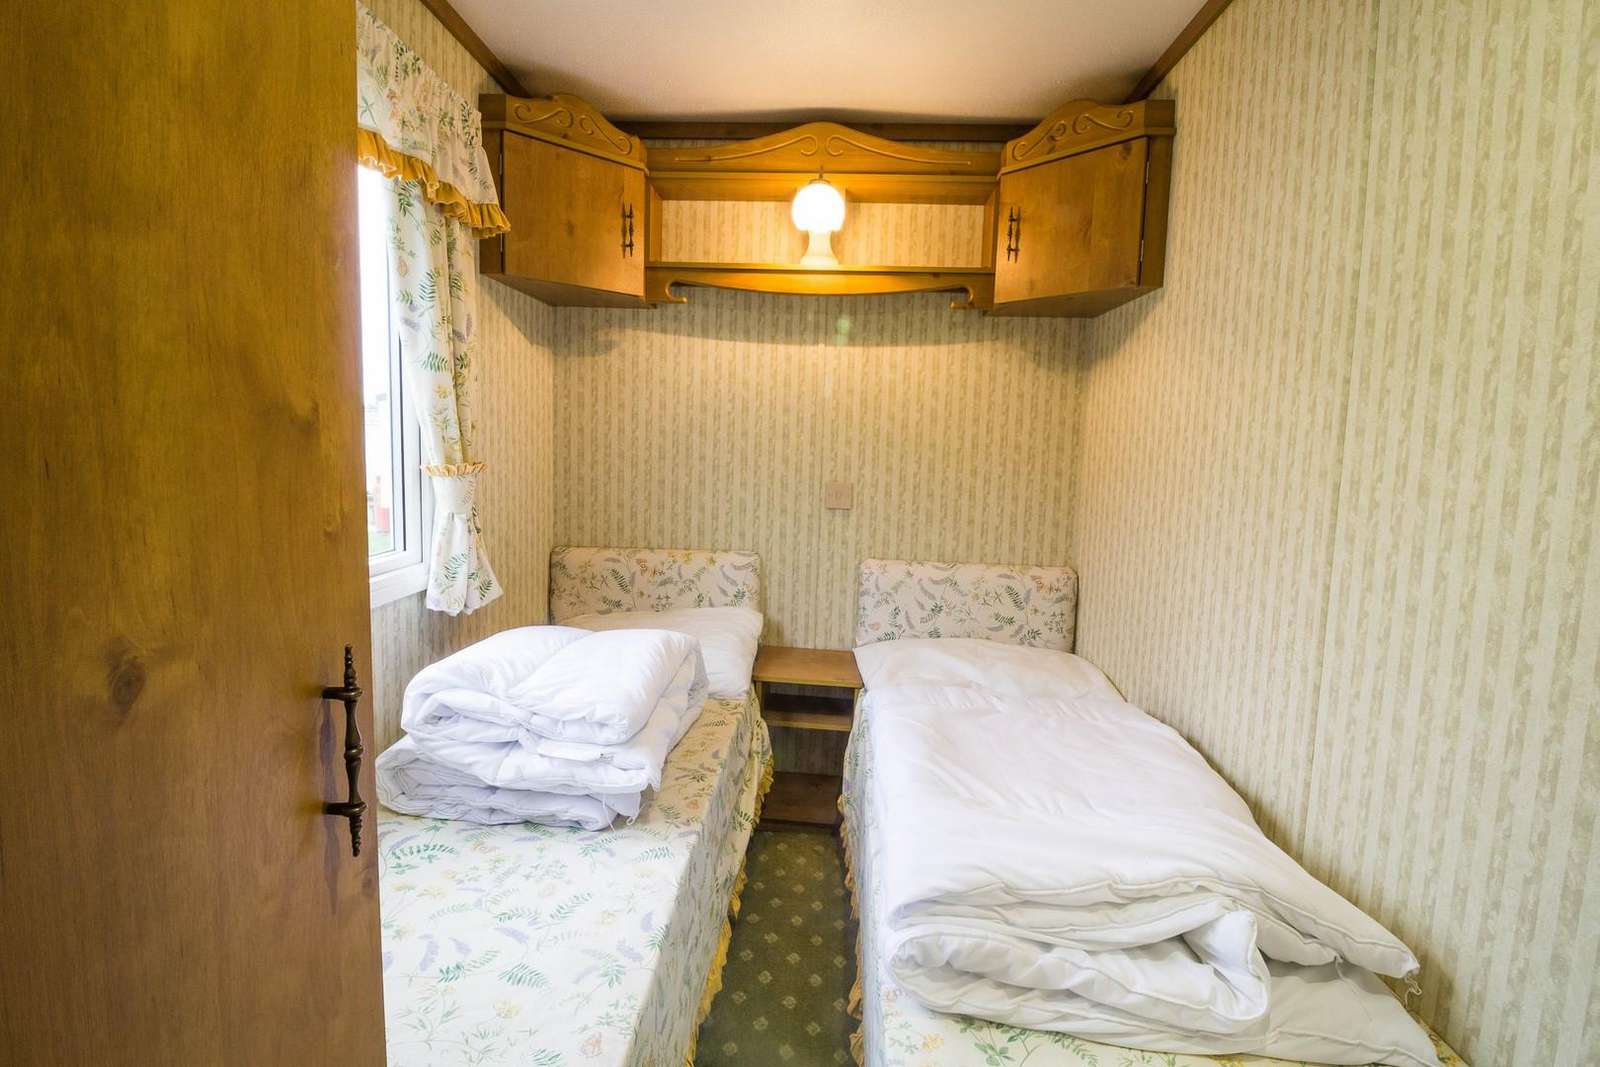 Twin room in this 3 bed roomed caravan for hire.